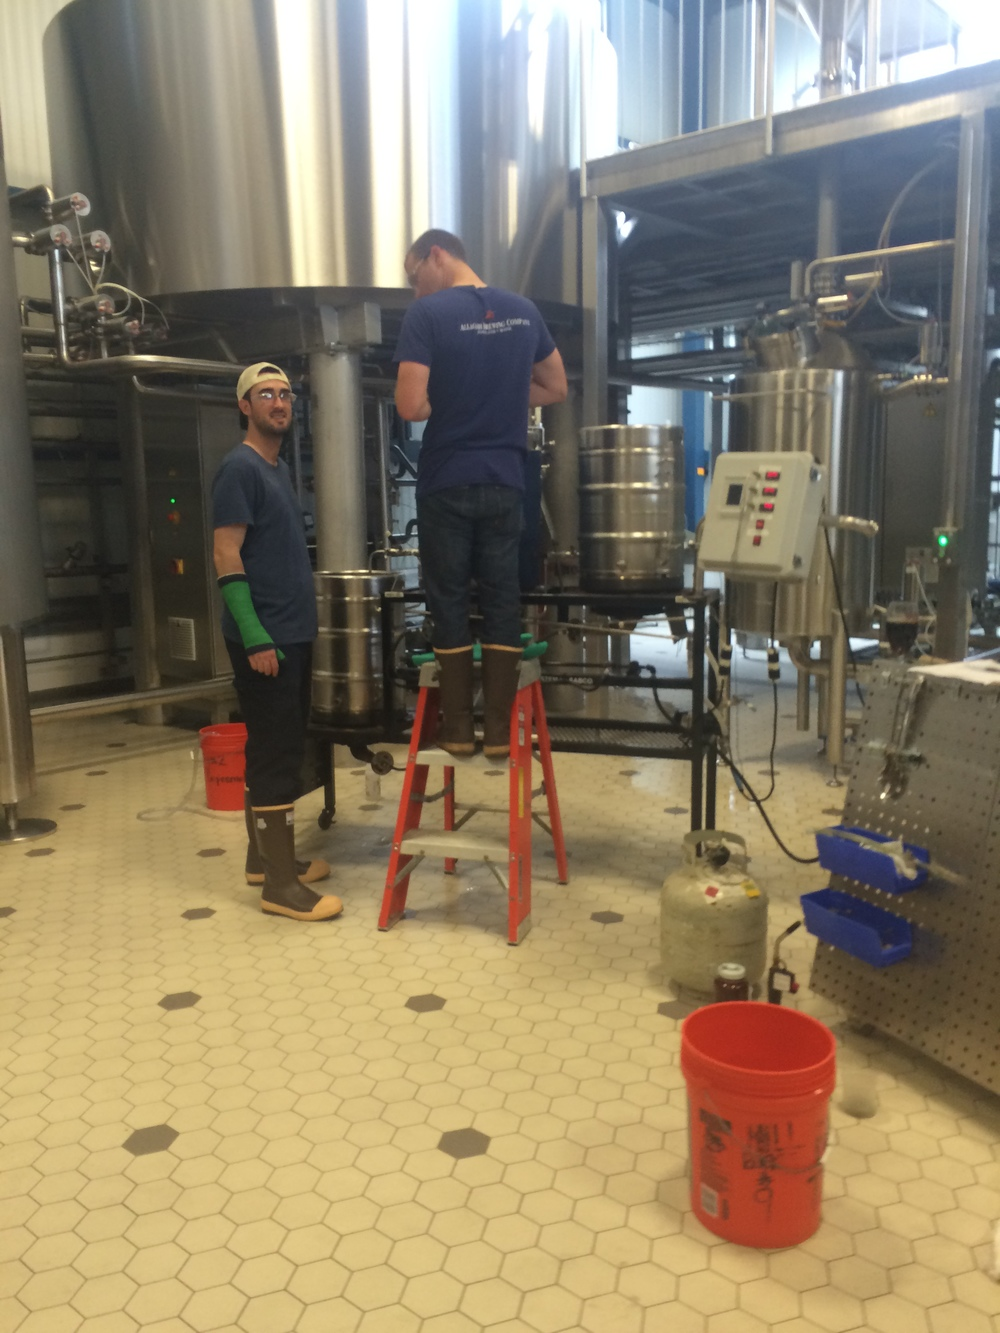 Allagash employees brewing a personal recipe on the pilot system